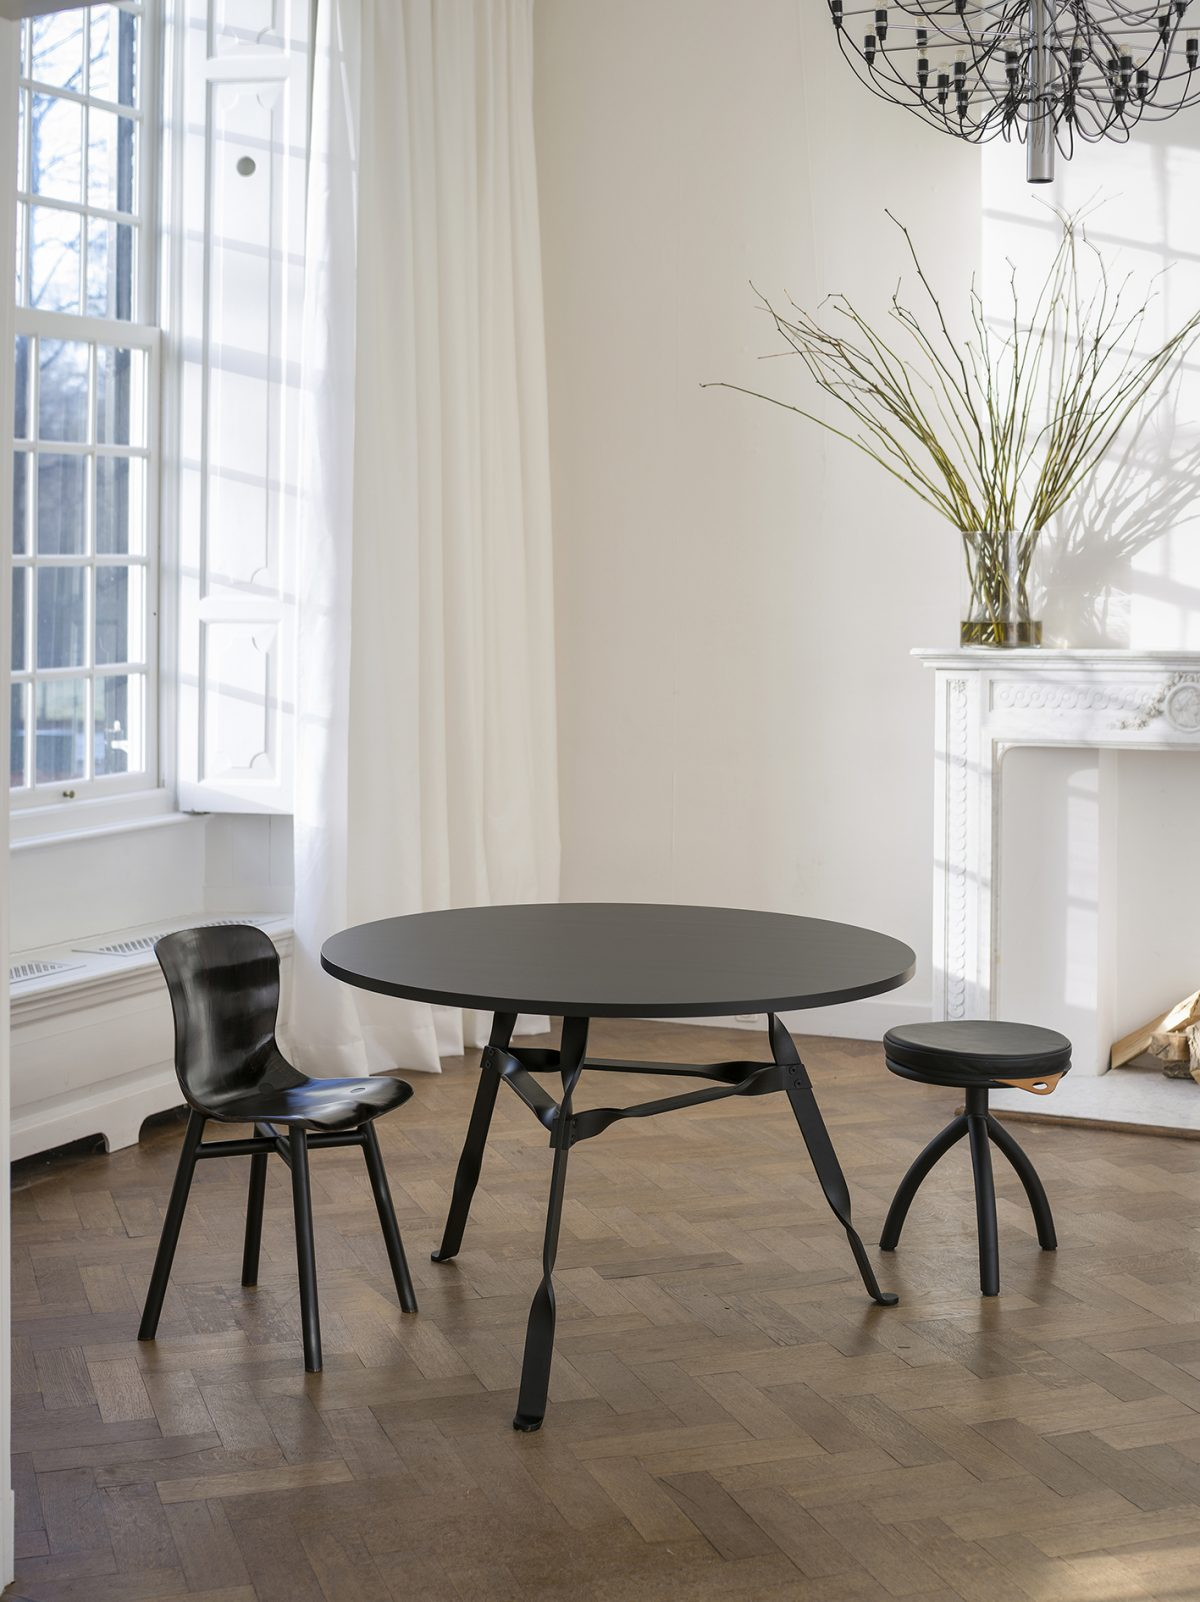 Twist Table Black Wendela Chair Black Functionals Gimmii